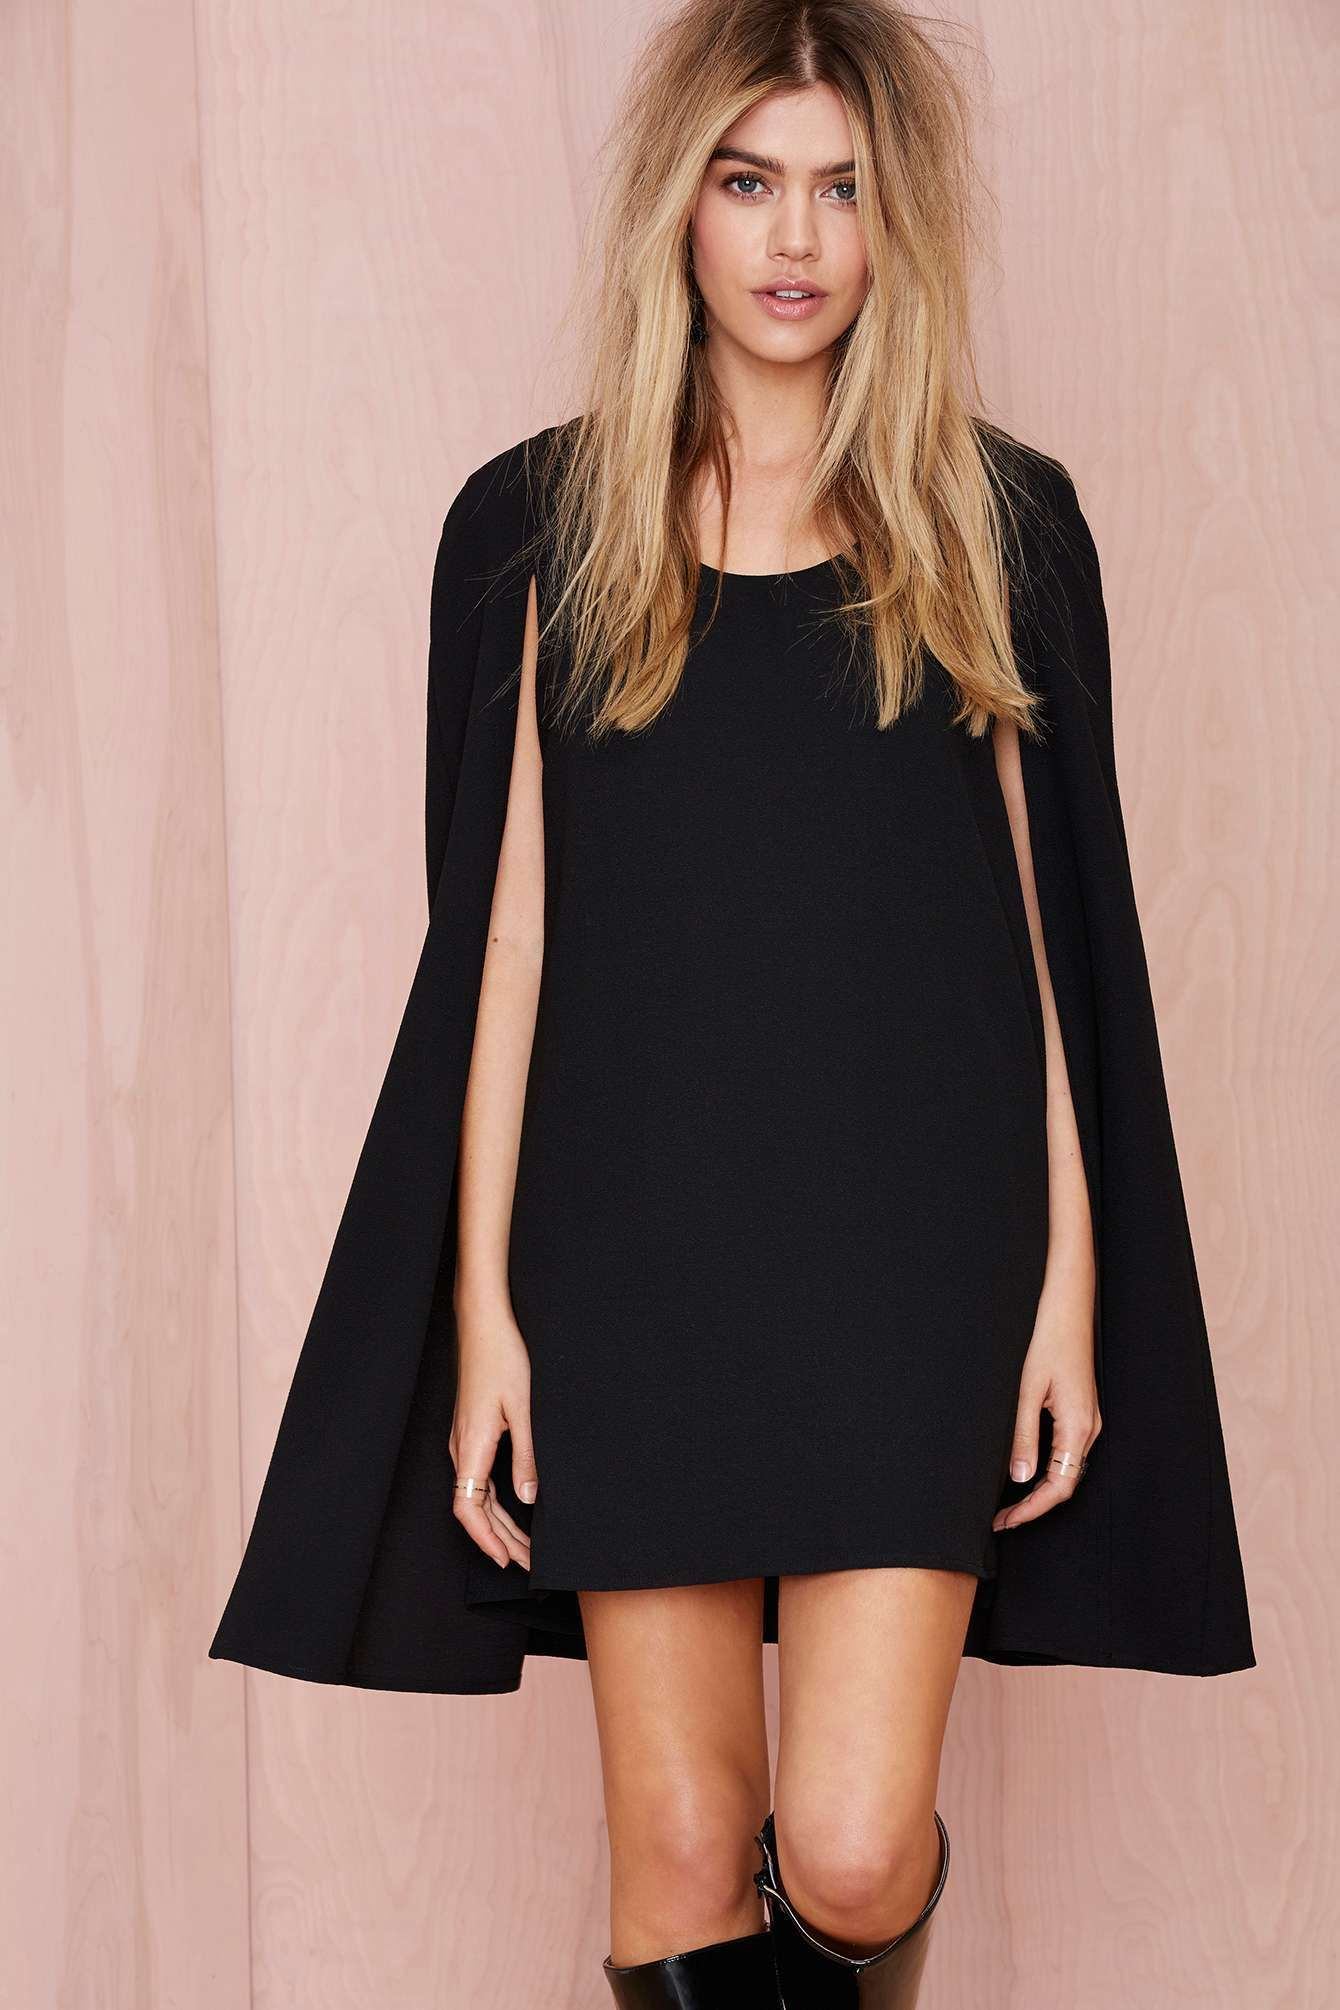 Nasty Gal Catherine Cape Dress | Shop Clothes at Nasty Gal!